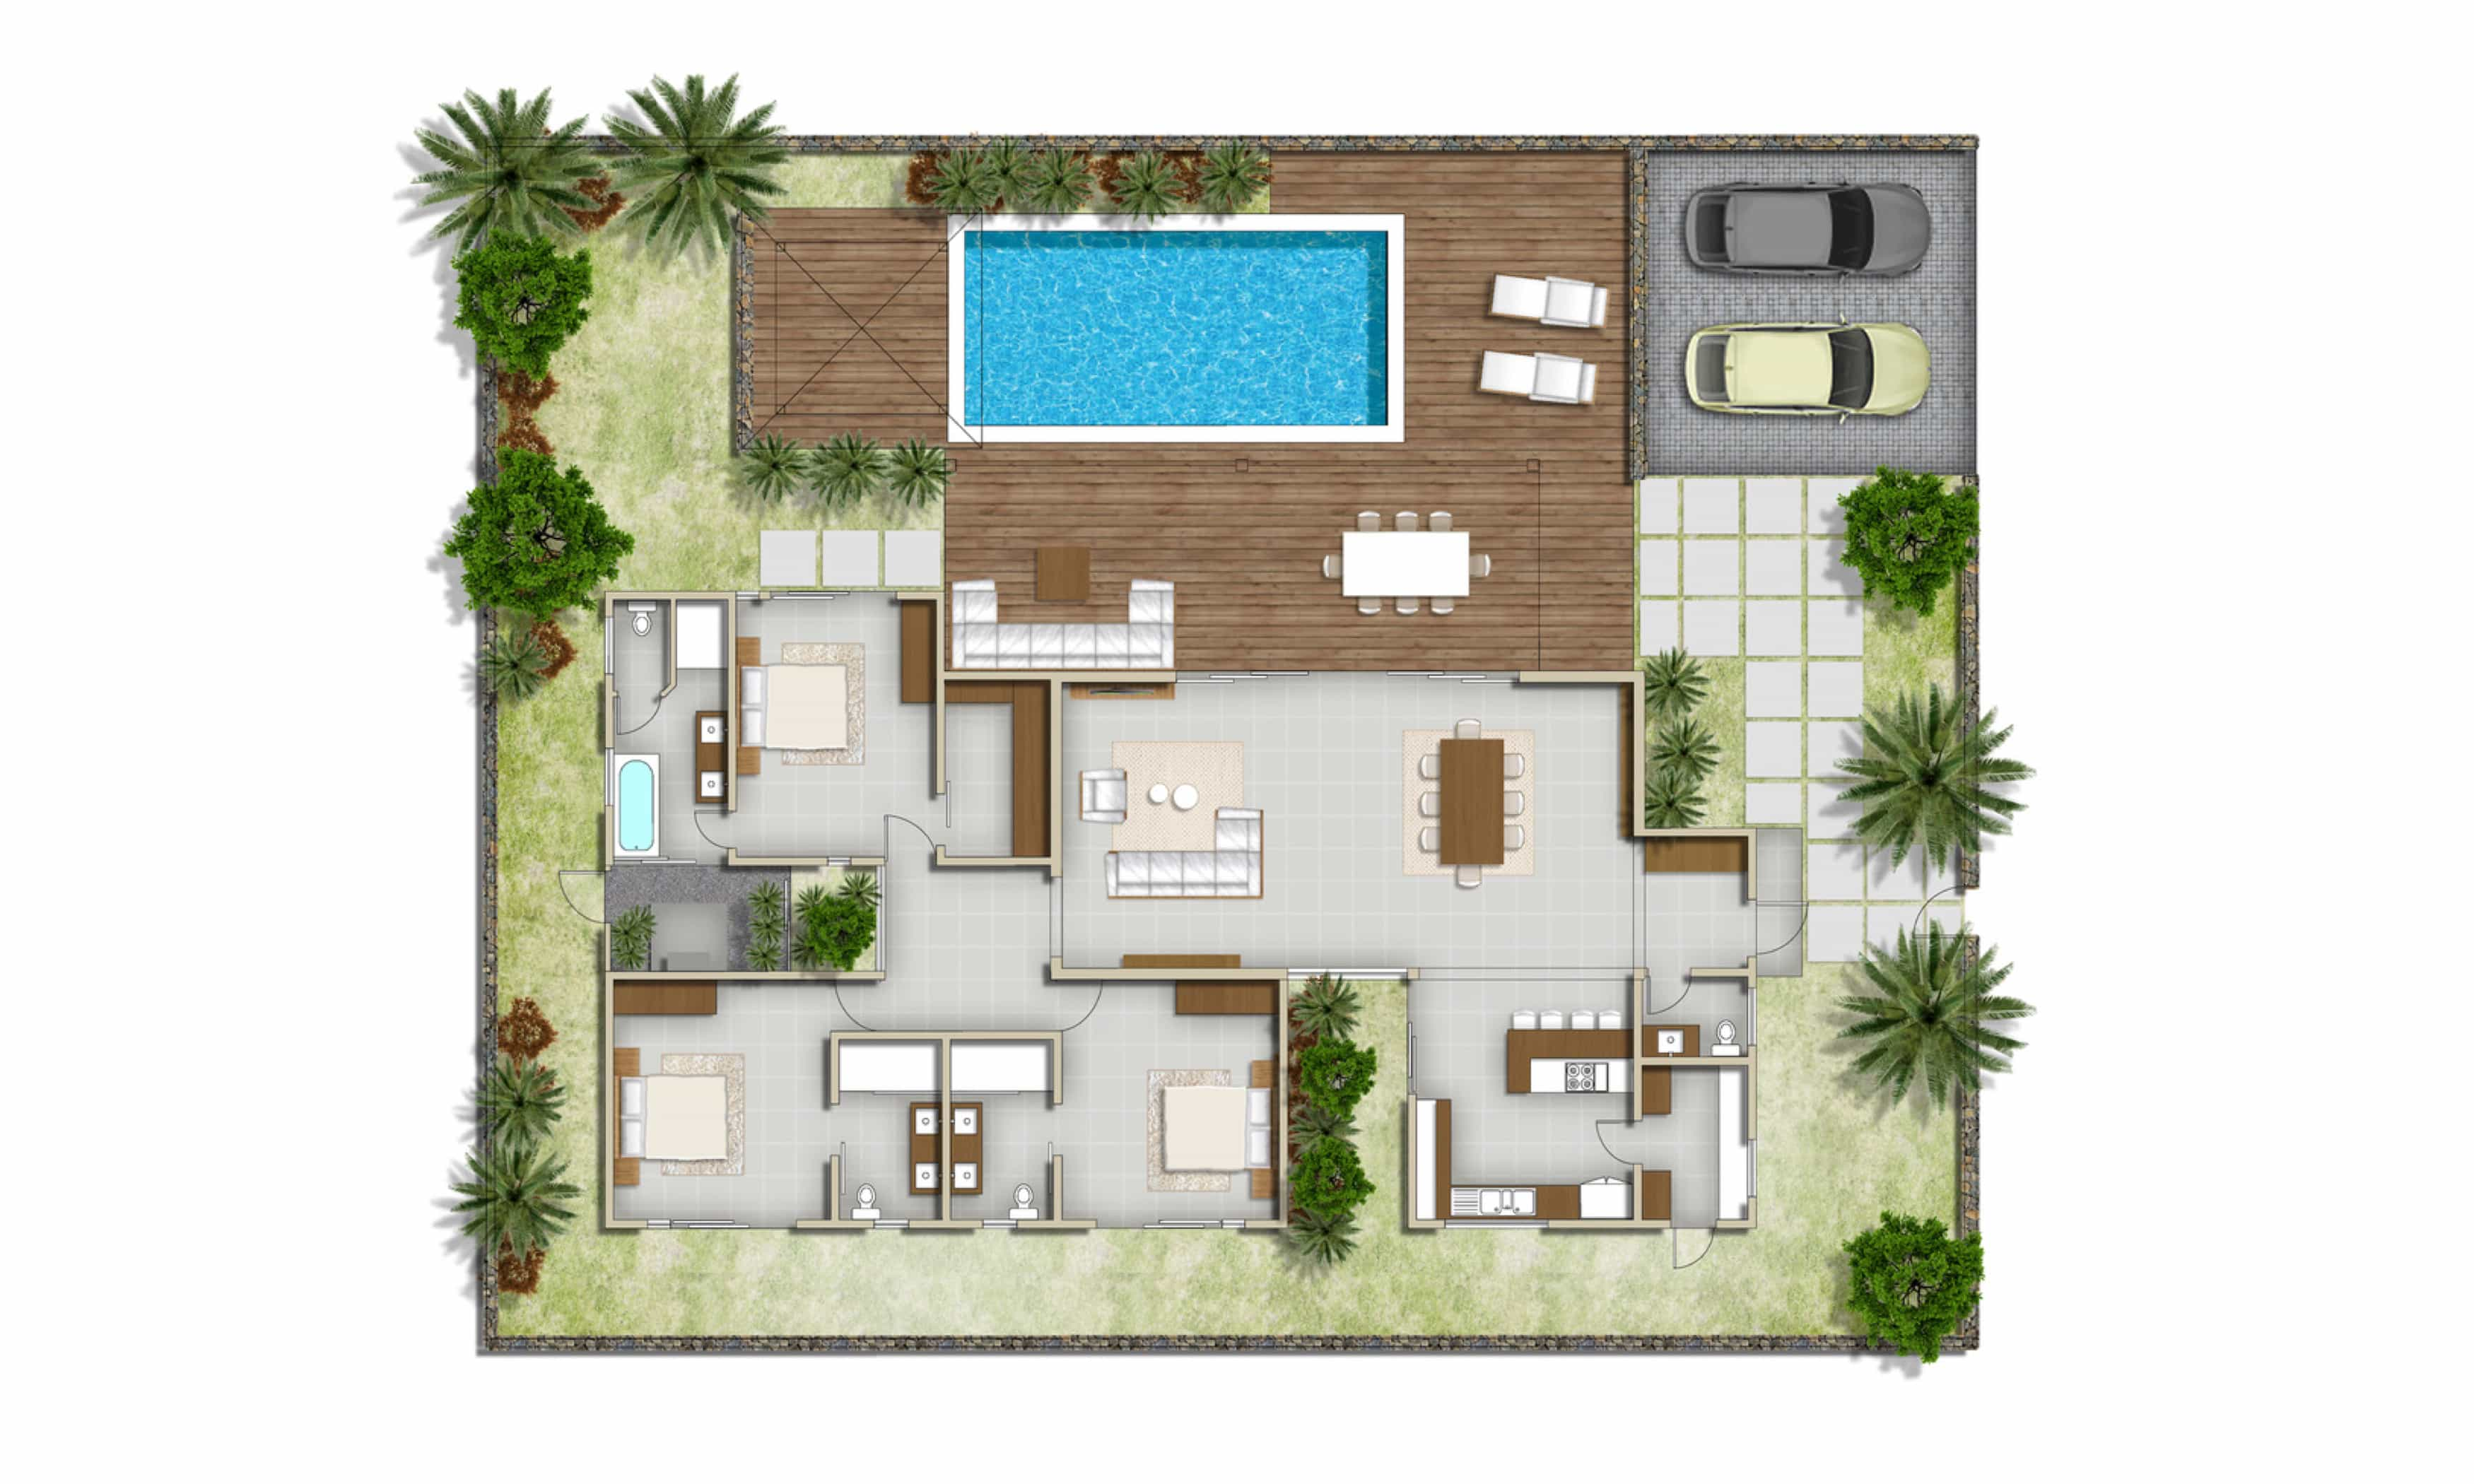 Villa saya pereybere for sales in mauritius res project deluxe real estate